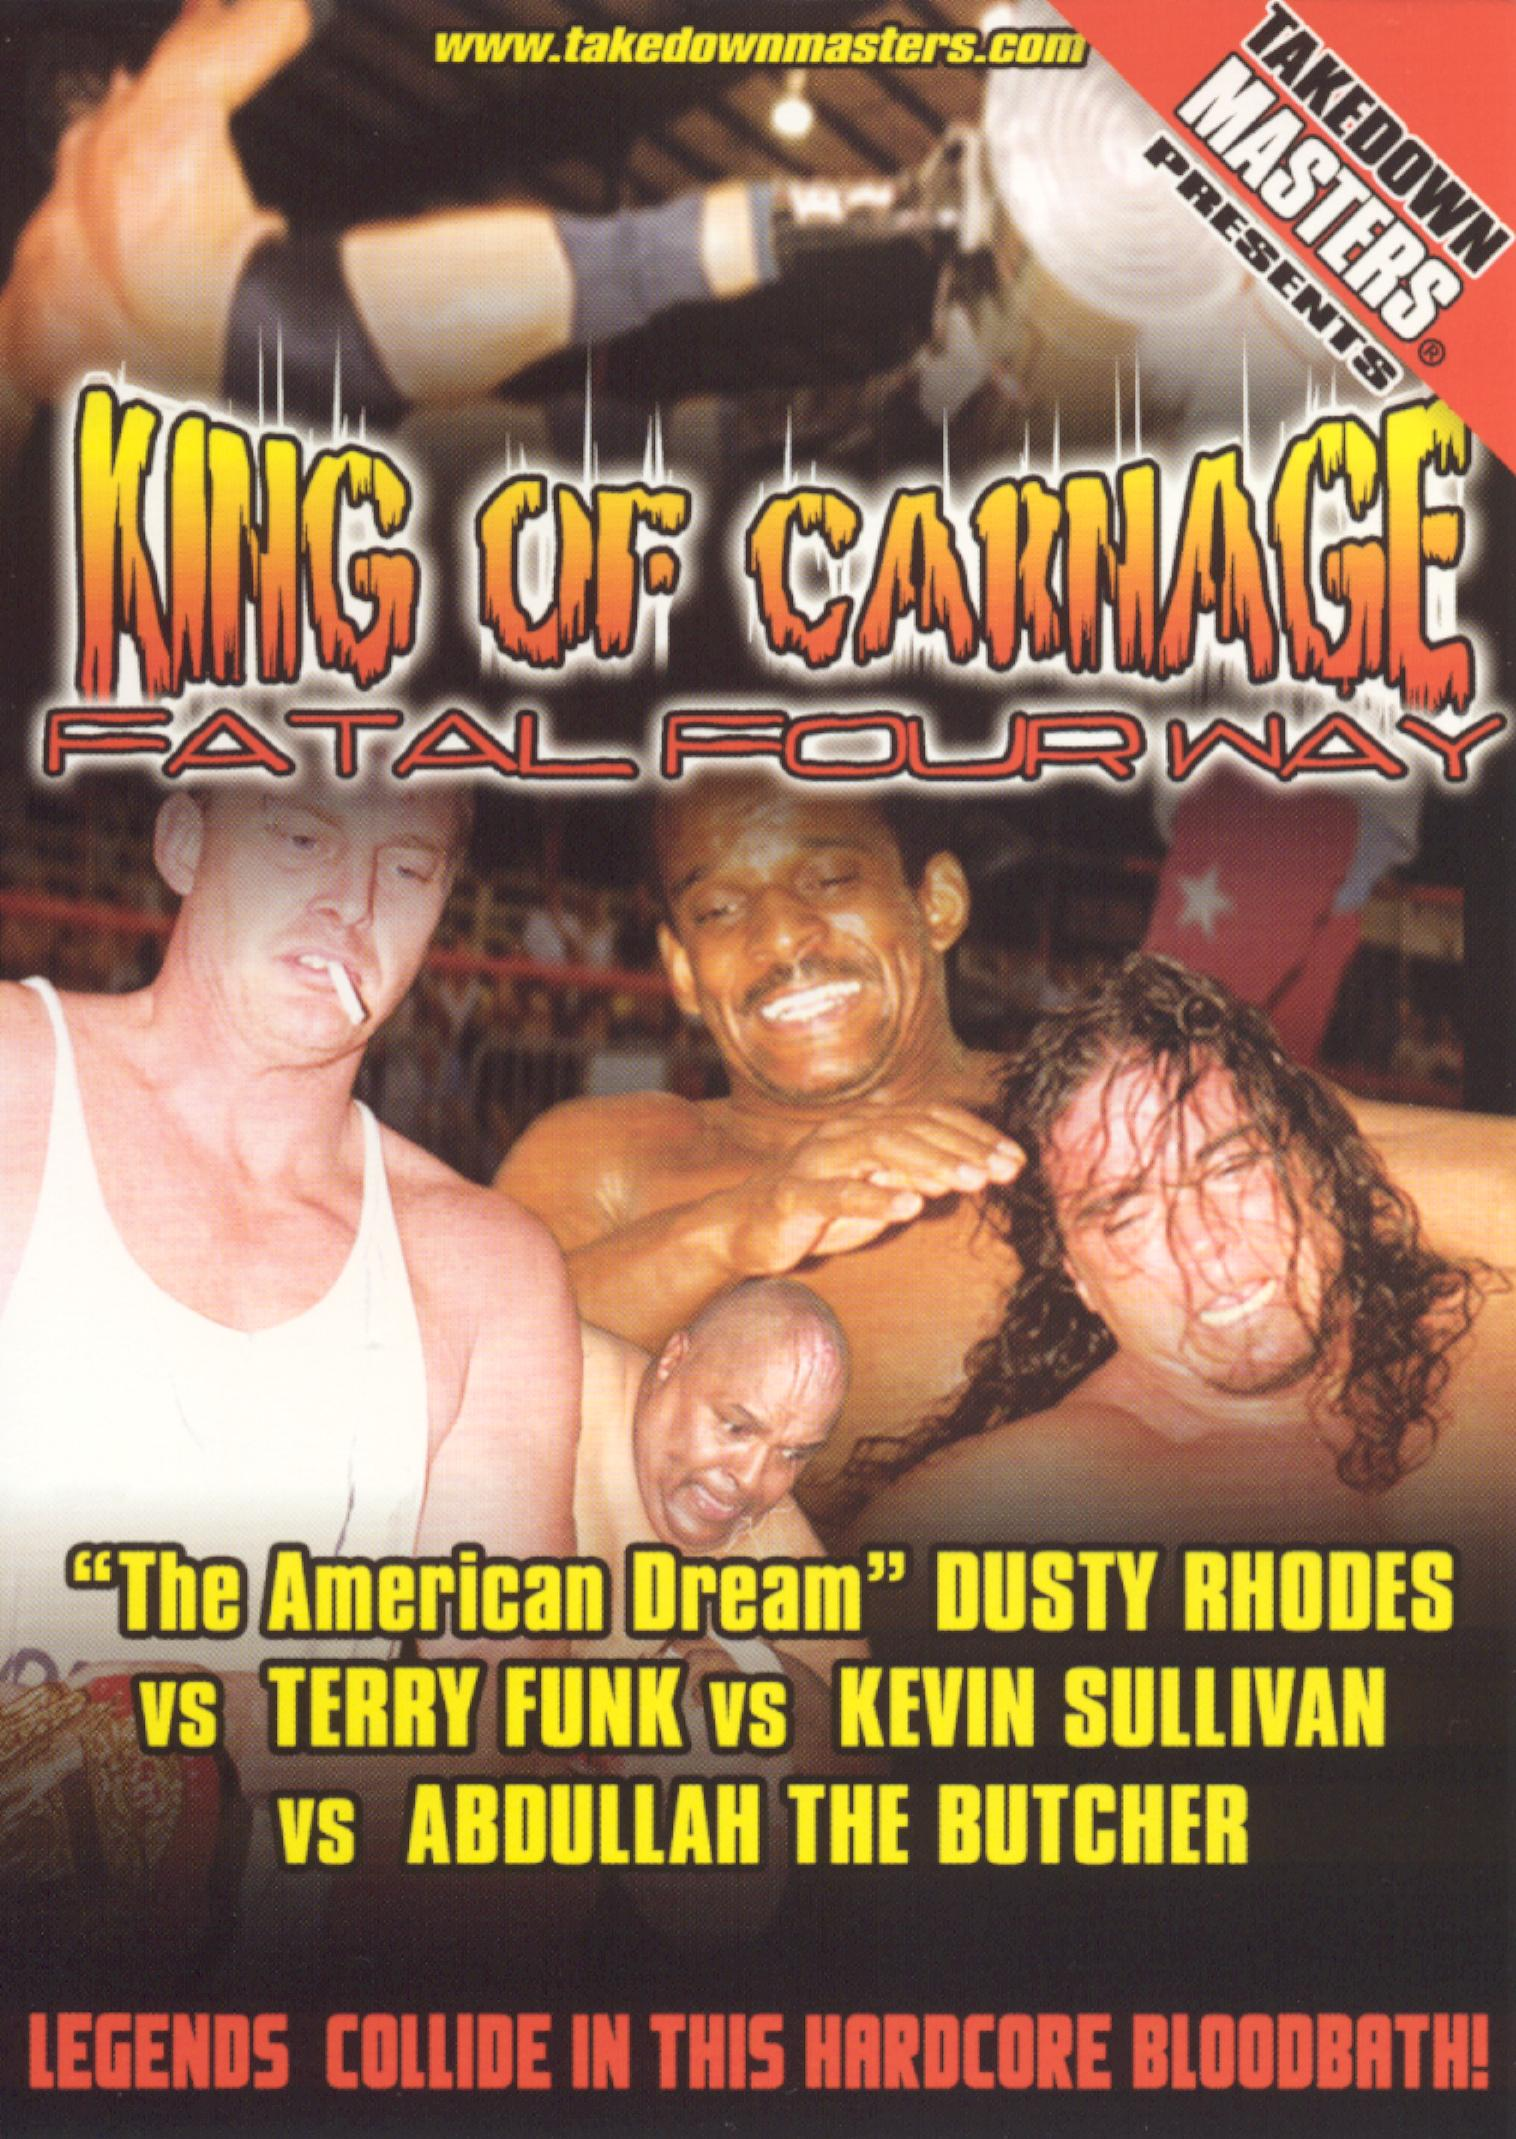 King of Carnage: Fatal Four Way